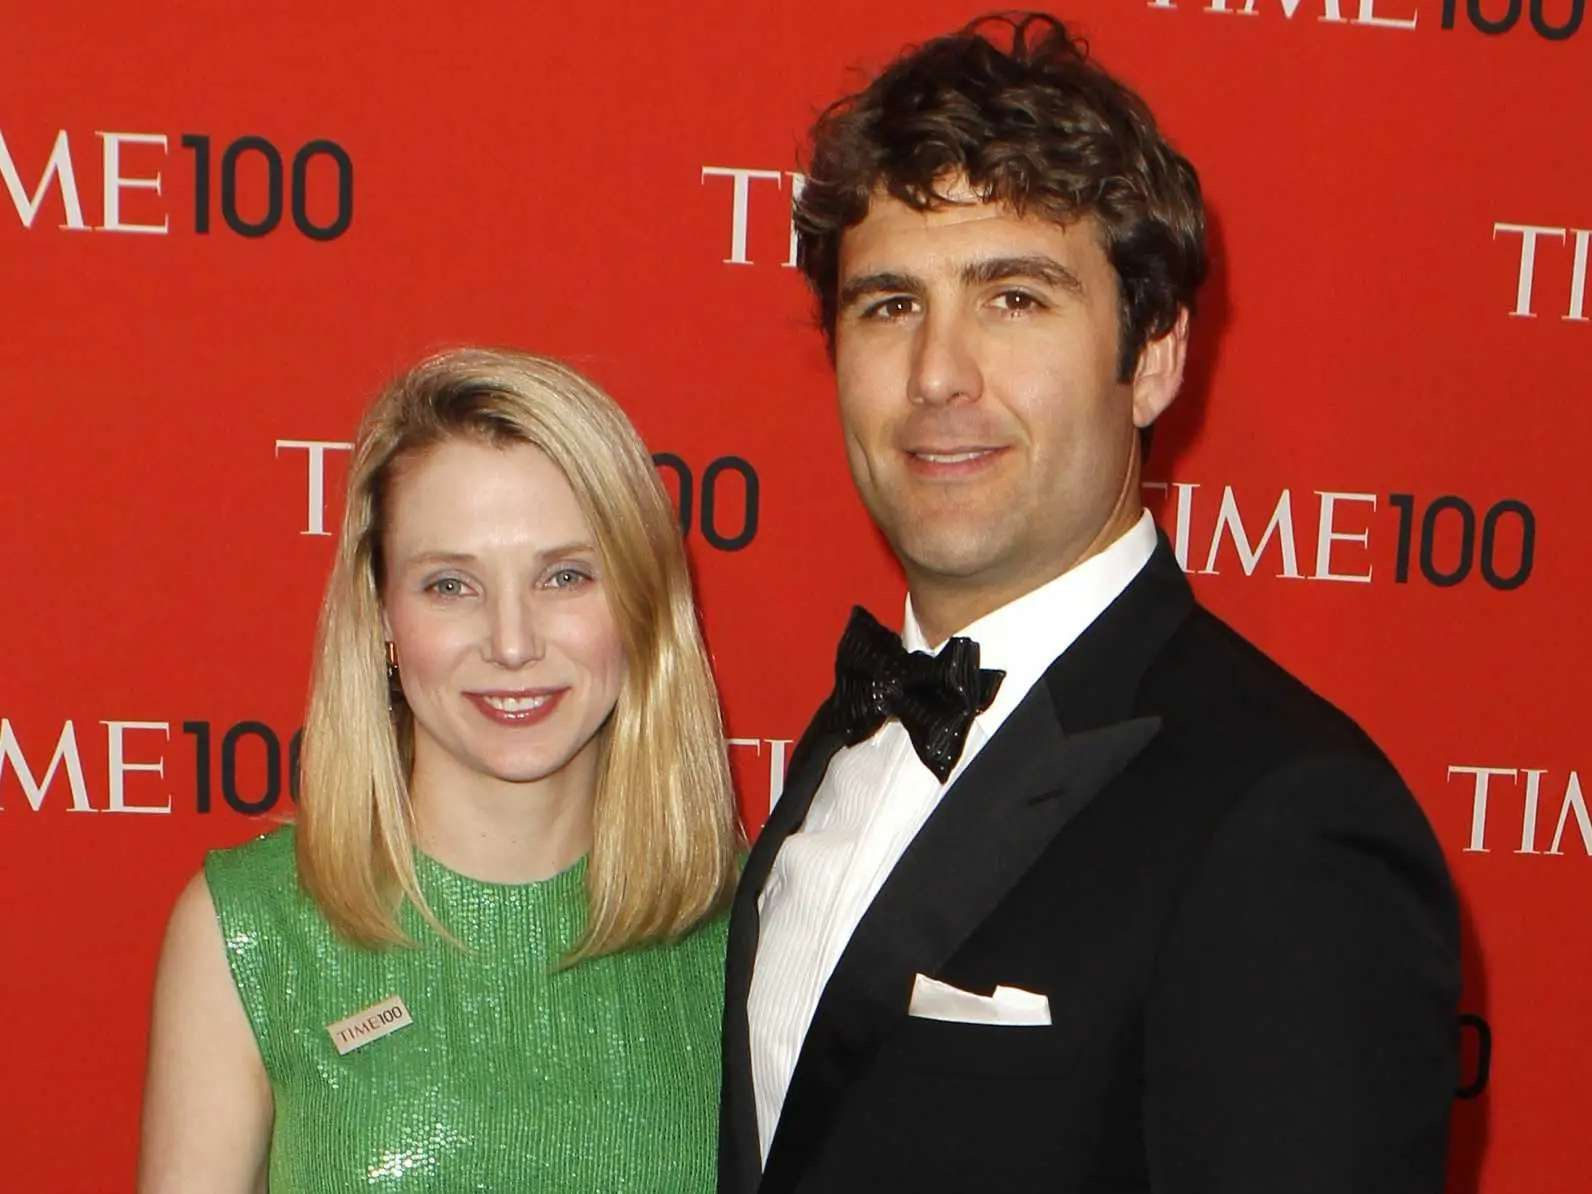 Yahoo's Marissa Mayer is married to VC Zack Bogue.